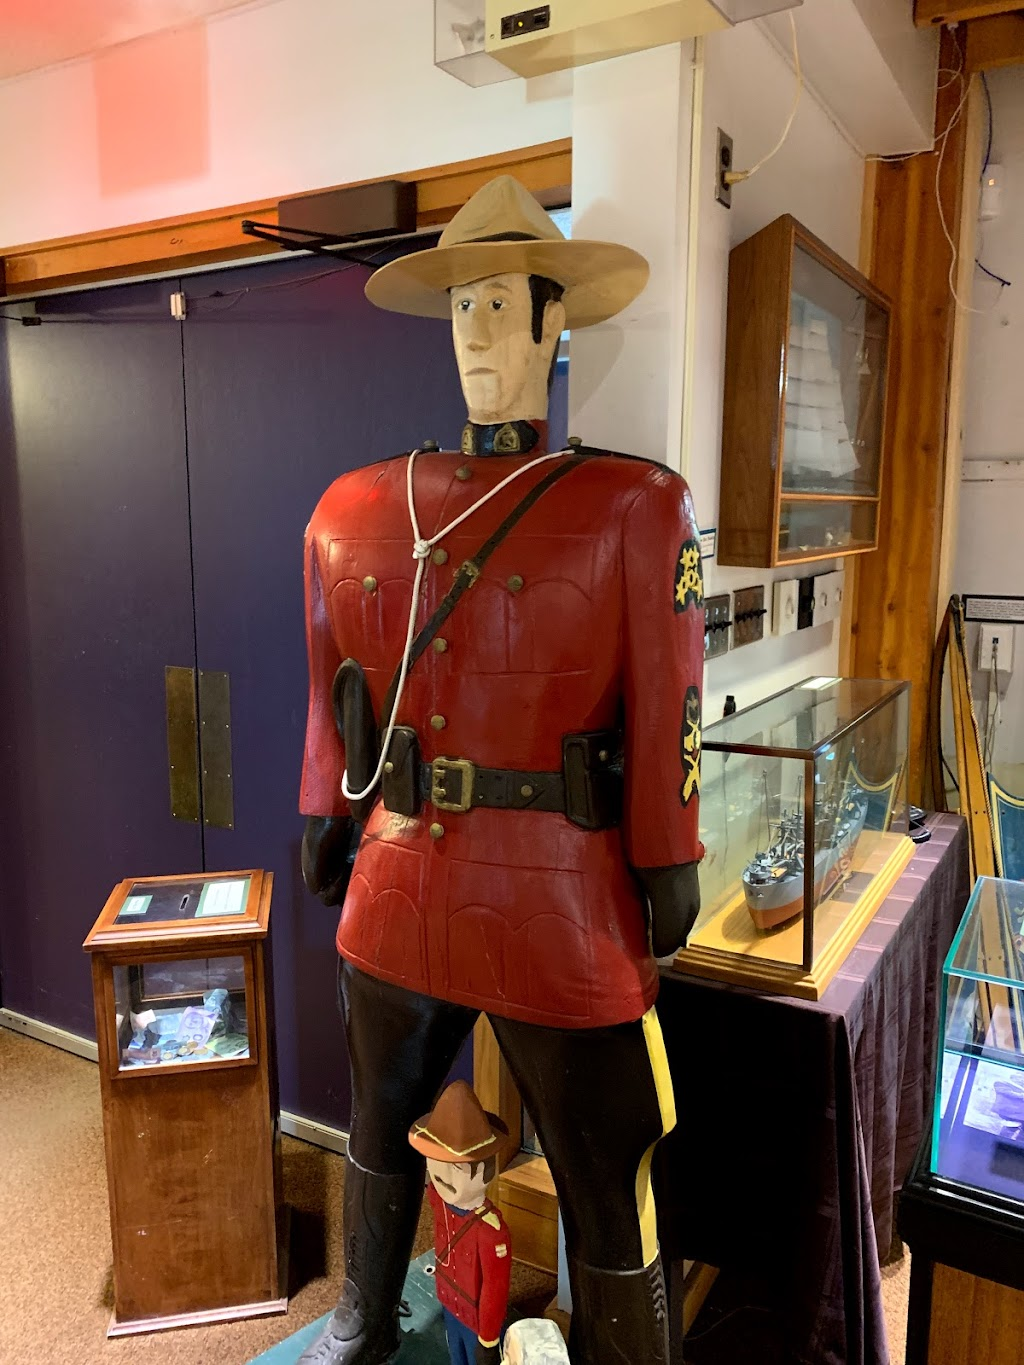 Queens County Museum | museum | 109 Main St, Liverpool, NS B0T 1K0, Canada | 9023544058 OR +1 902-354-4058